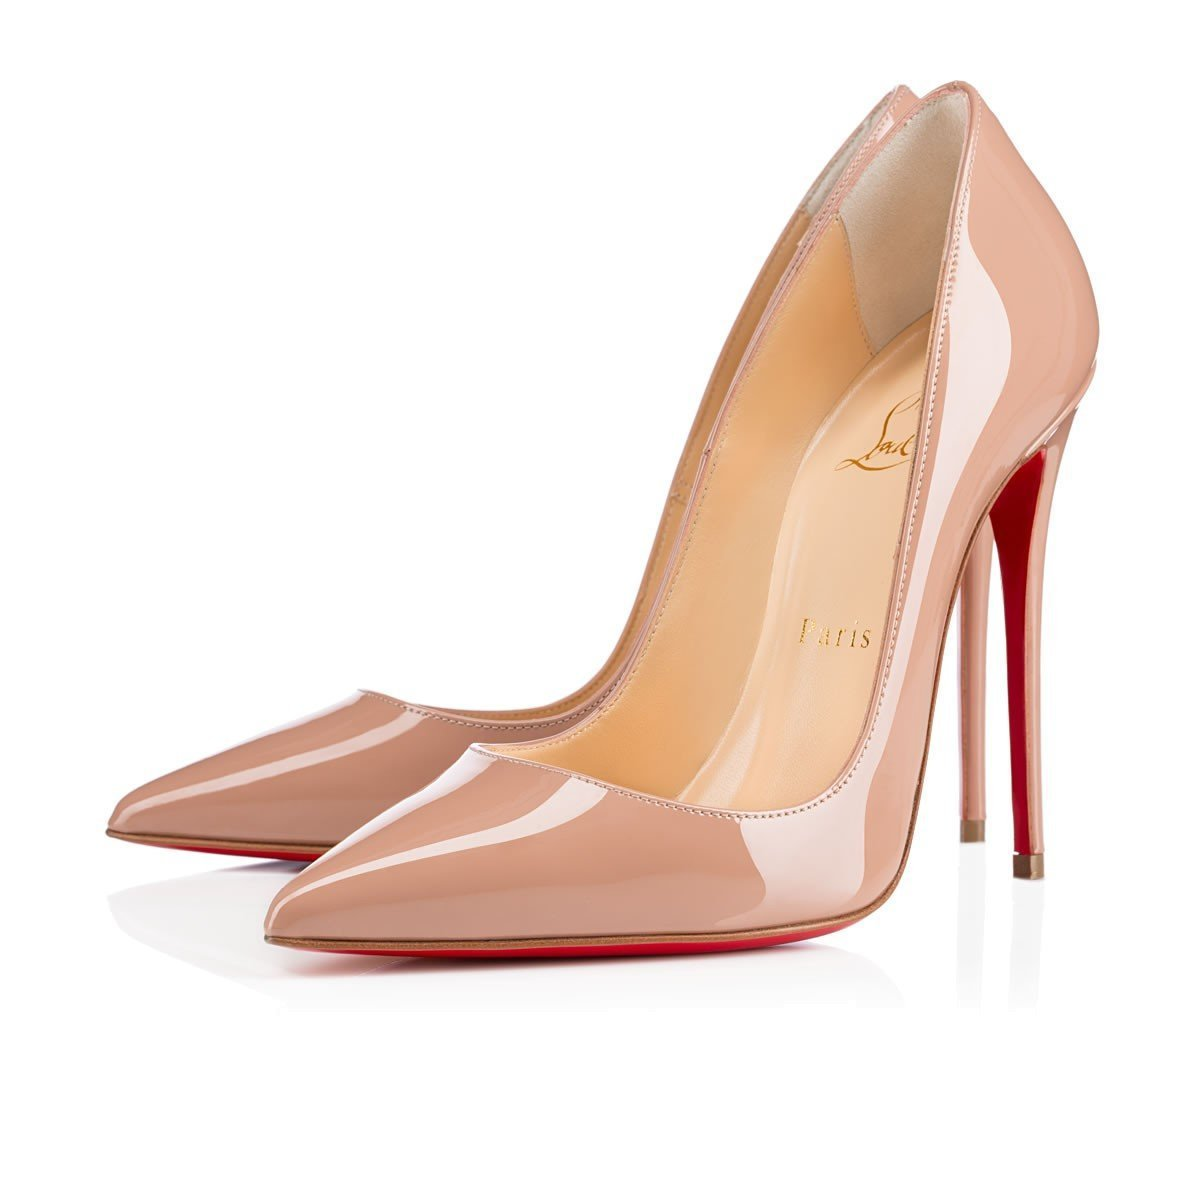 b5a2983ac45 Christian Louboutin So Kate Patent Leather Point-Toe Pump Sz 39 ...